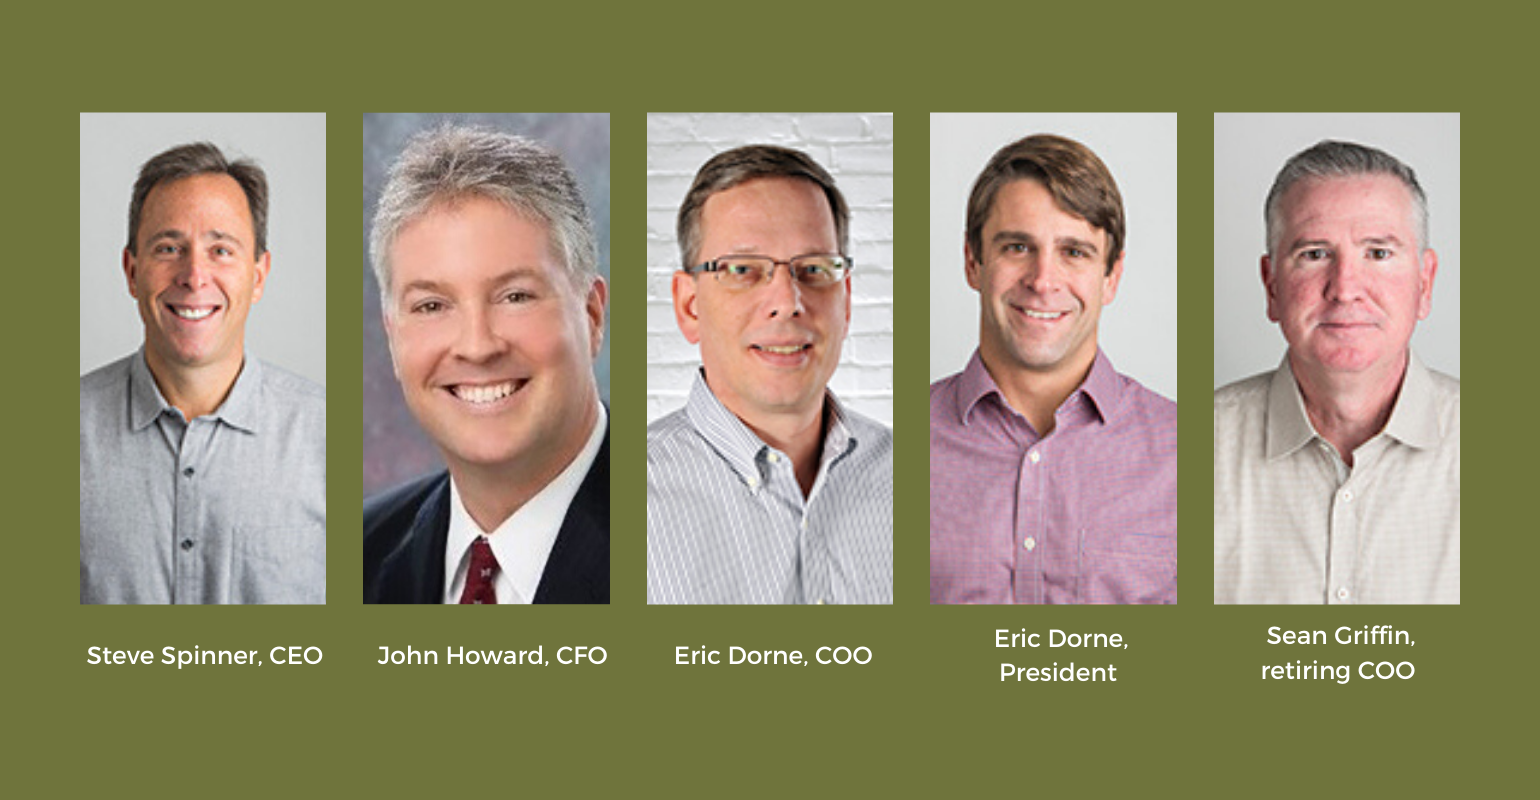 UNFI names new executives John Howard, Eric Dorne, Chris Testa; Sean Griffin retires; Steve Spinner contract extended